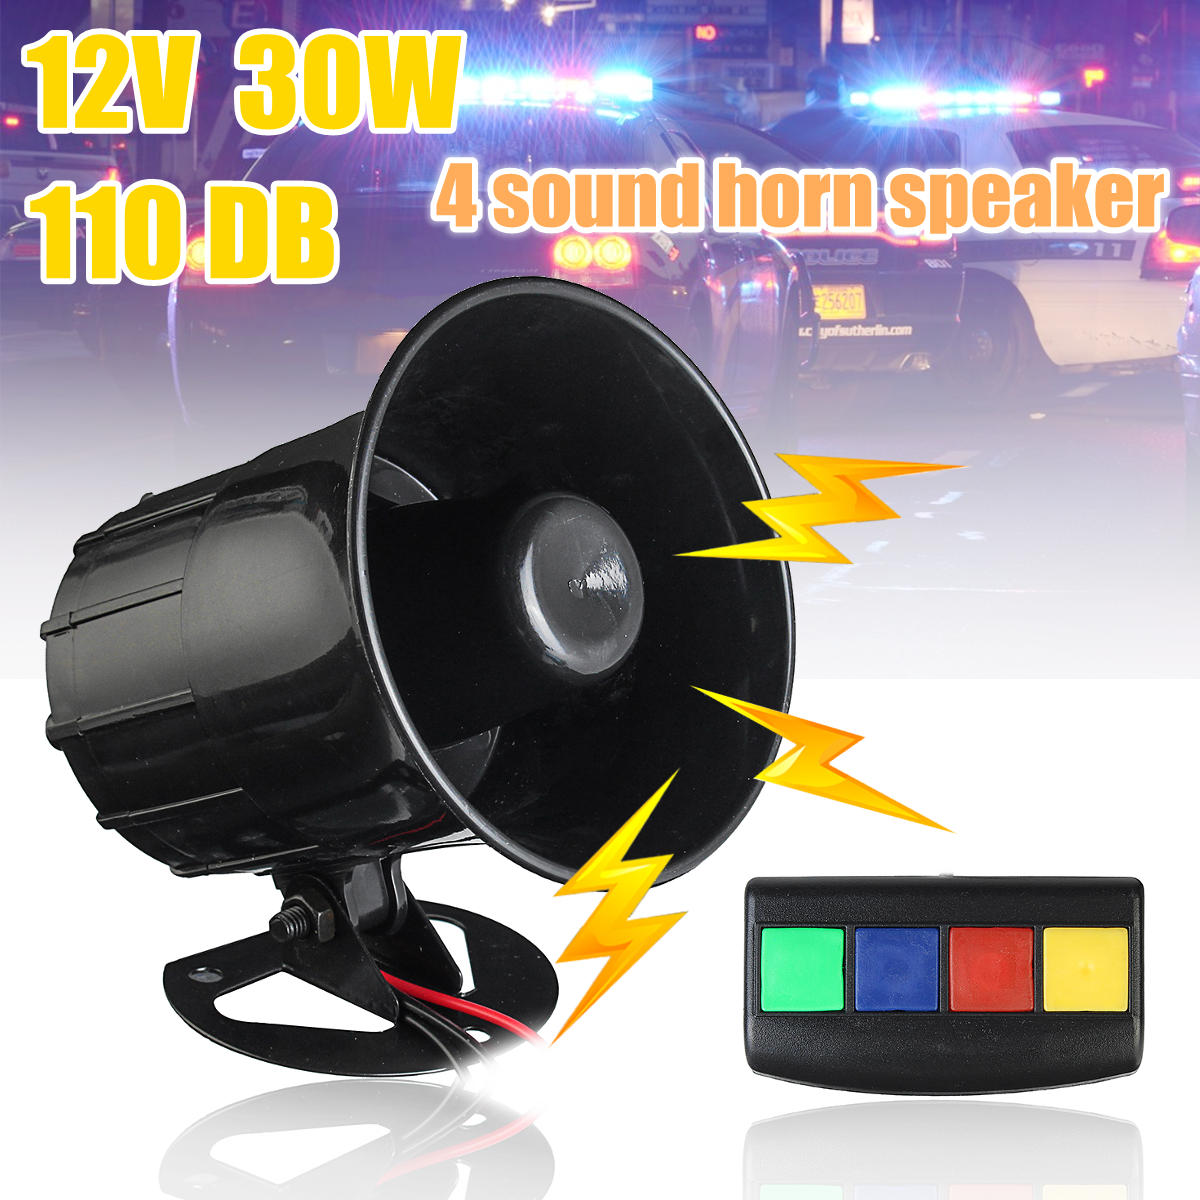 4 Sound Loud Tone 12V 30W 110dB Car Motorcycle Warning Alarm For Fire Horn Speaker System